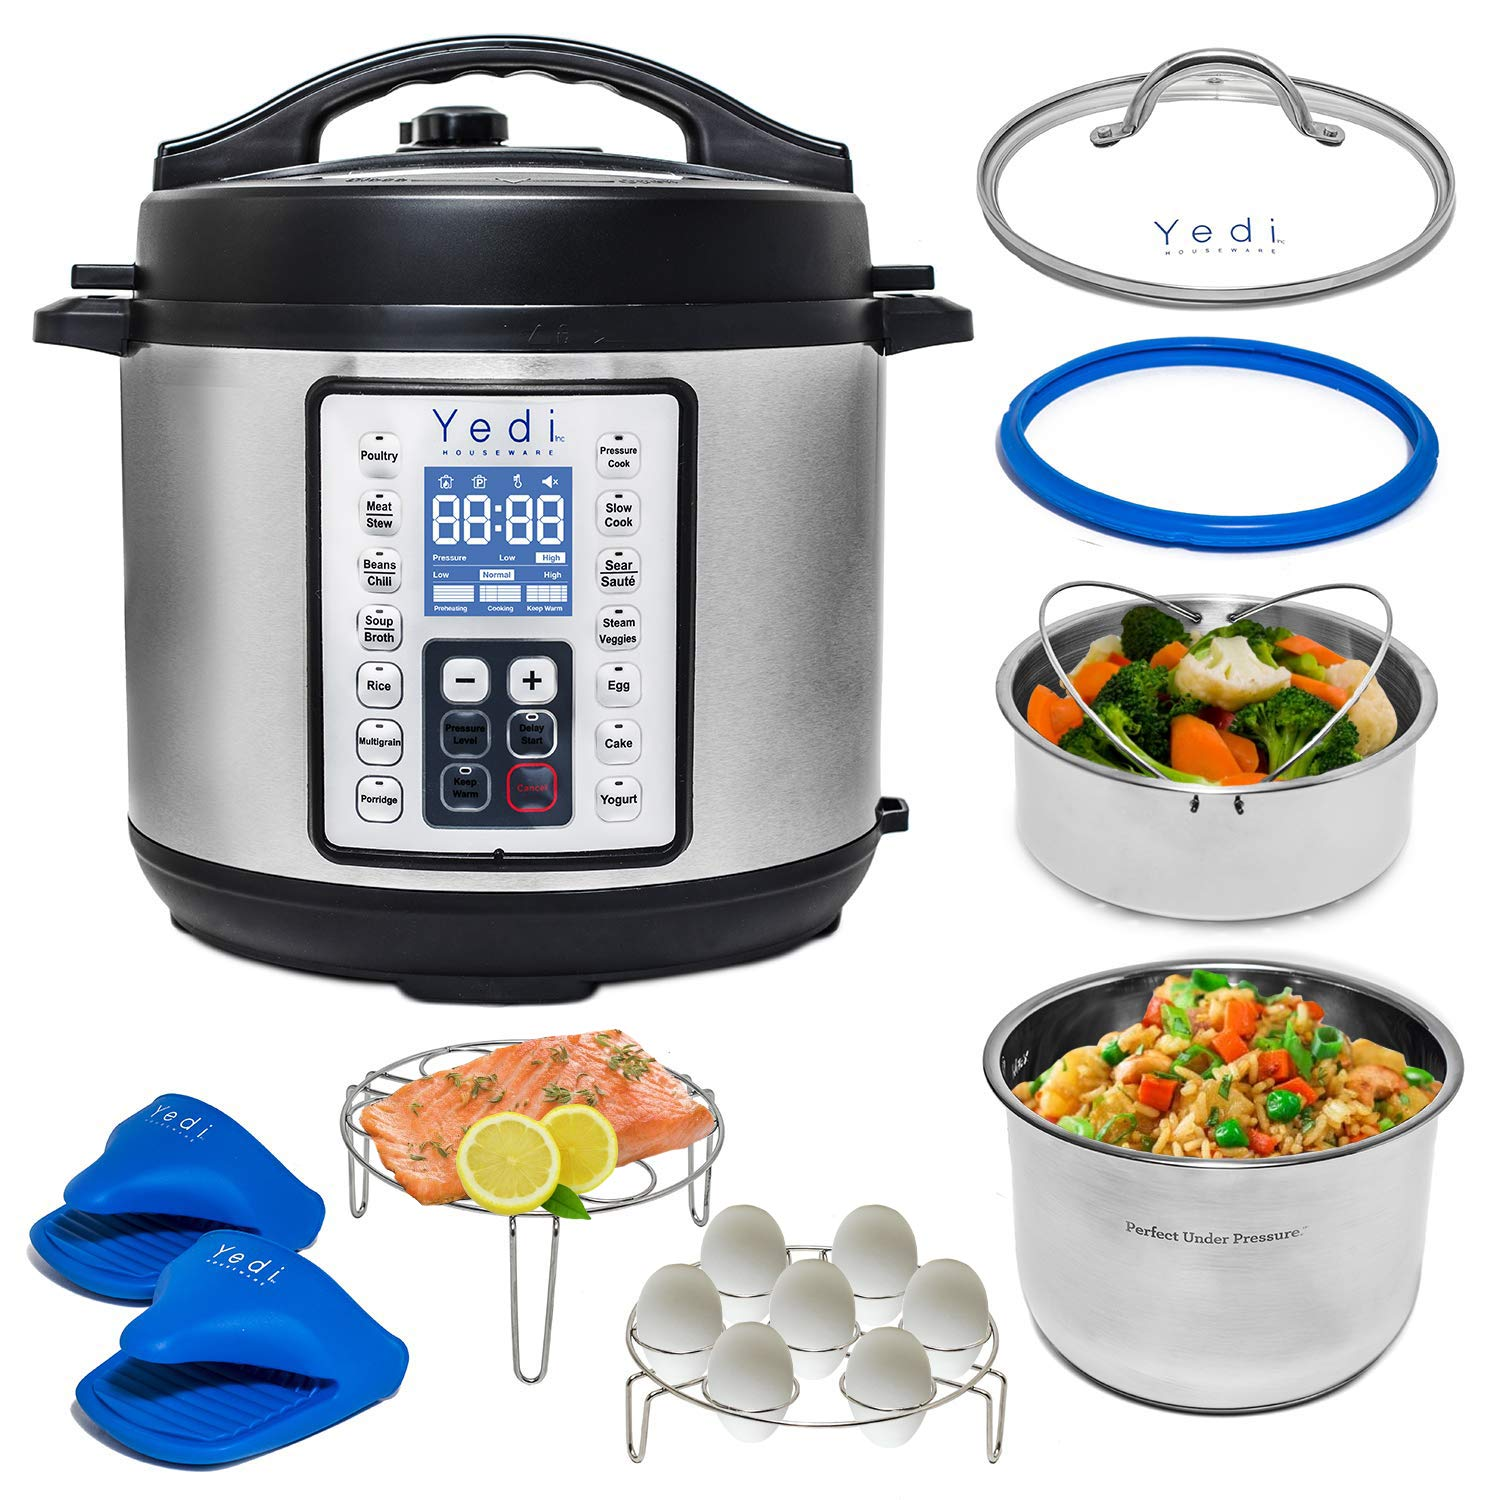 Top 10 Best Instant Pots